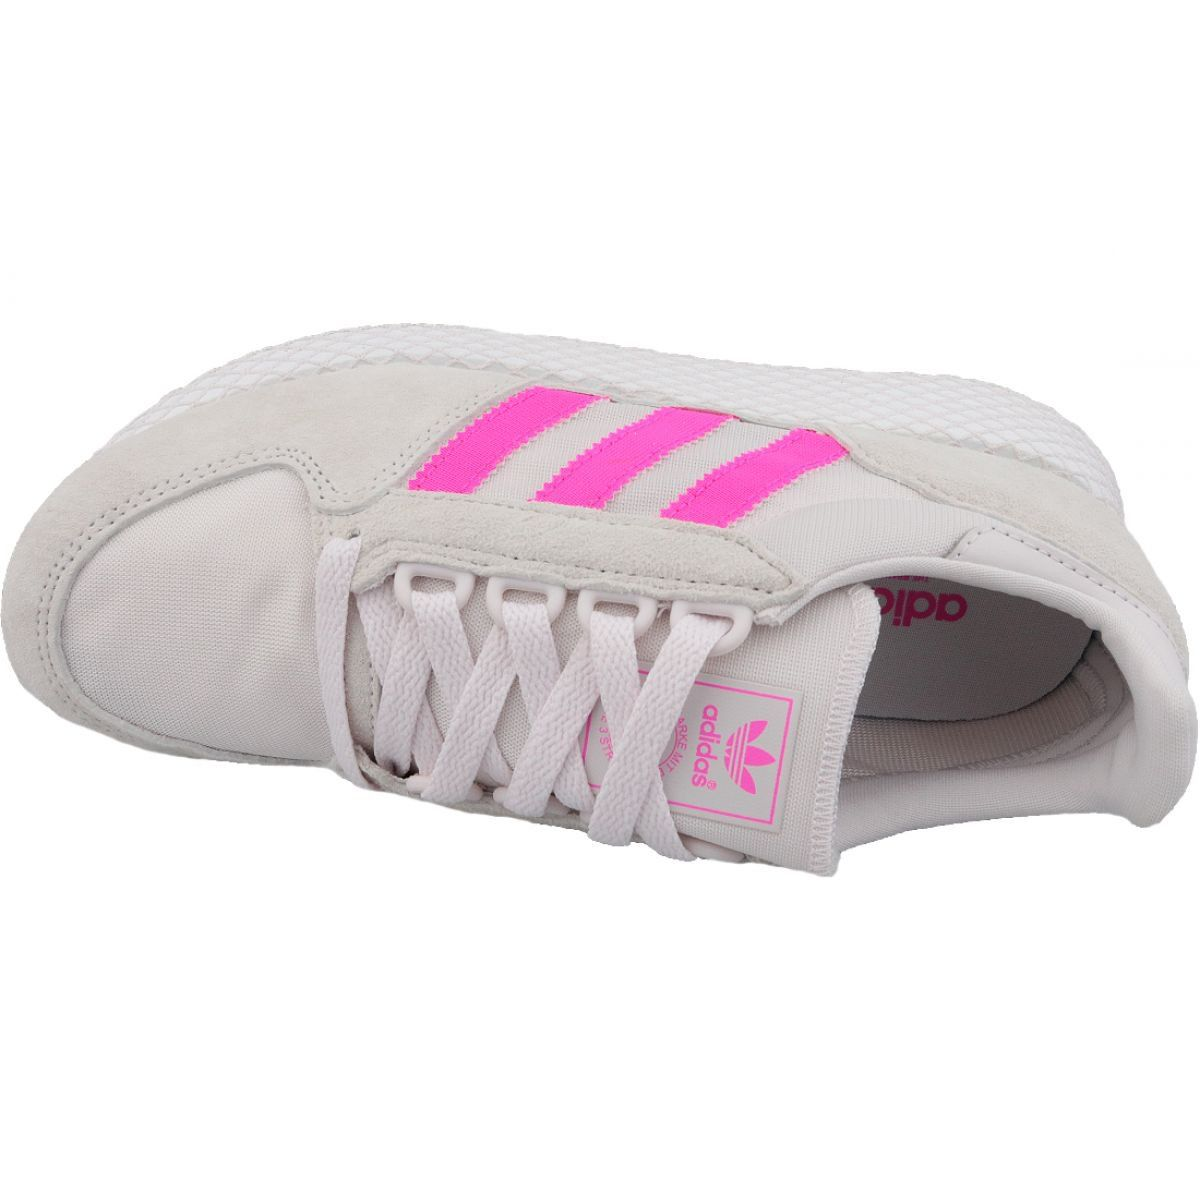 Buty Adidas Forest Grove W Ee5847 Biale Adidas Shoes Women Sports Footwear Shoes